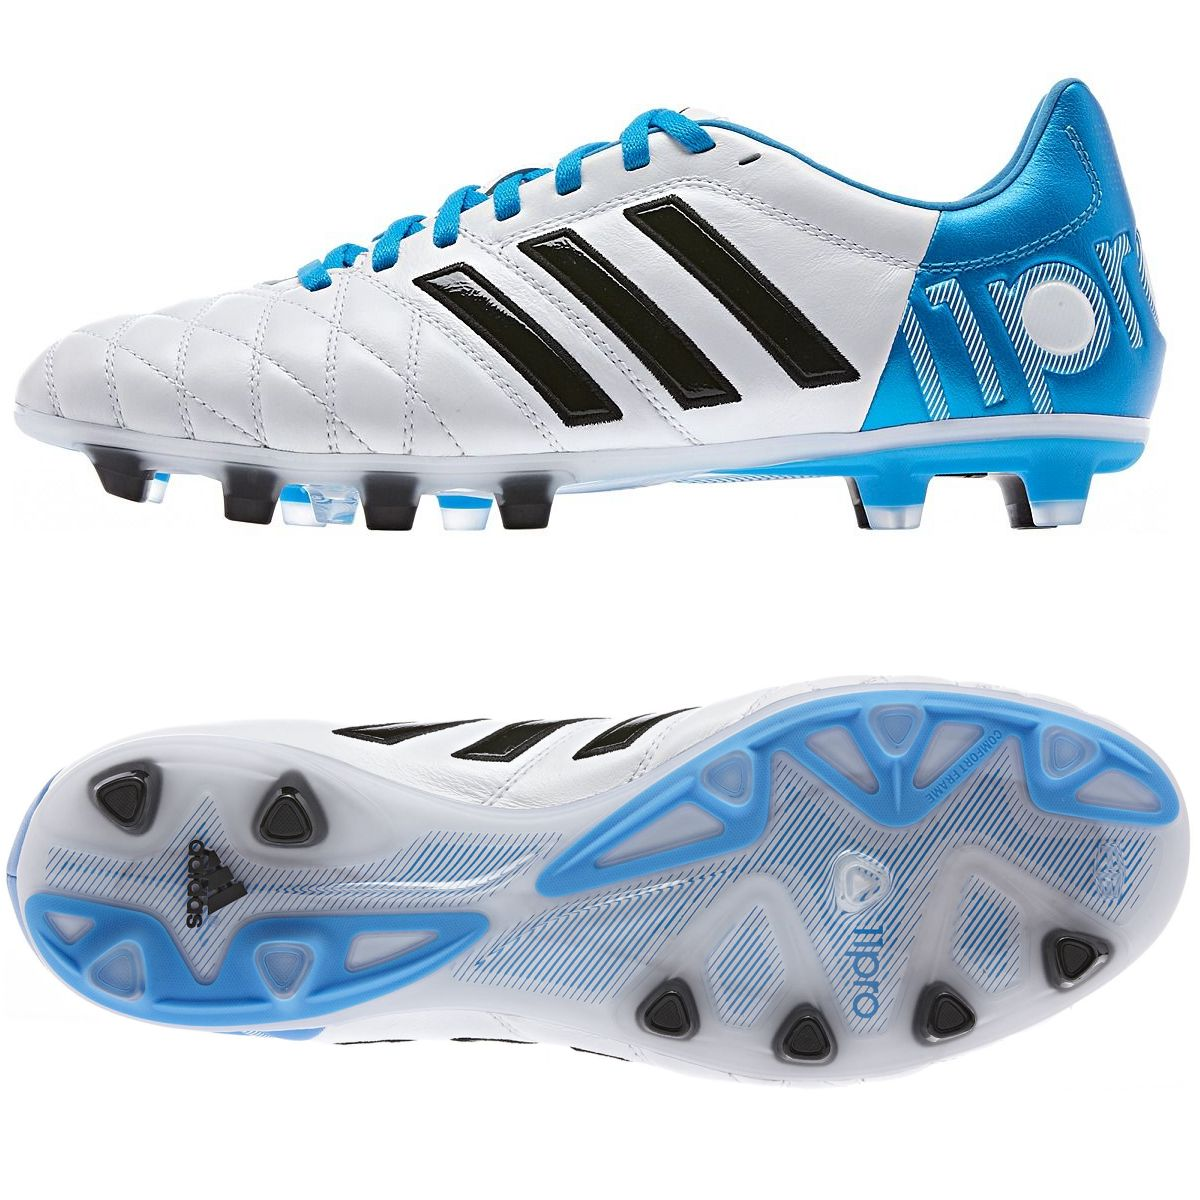 adidas adipure 11pro ag weiss